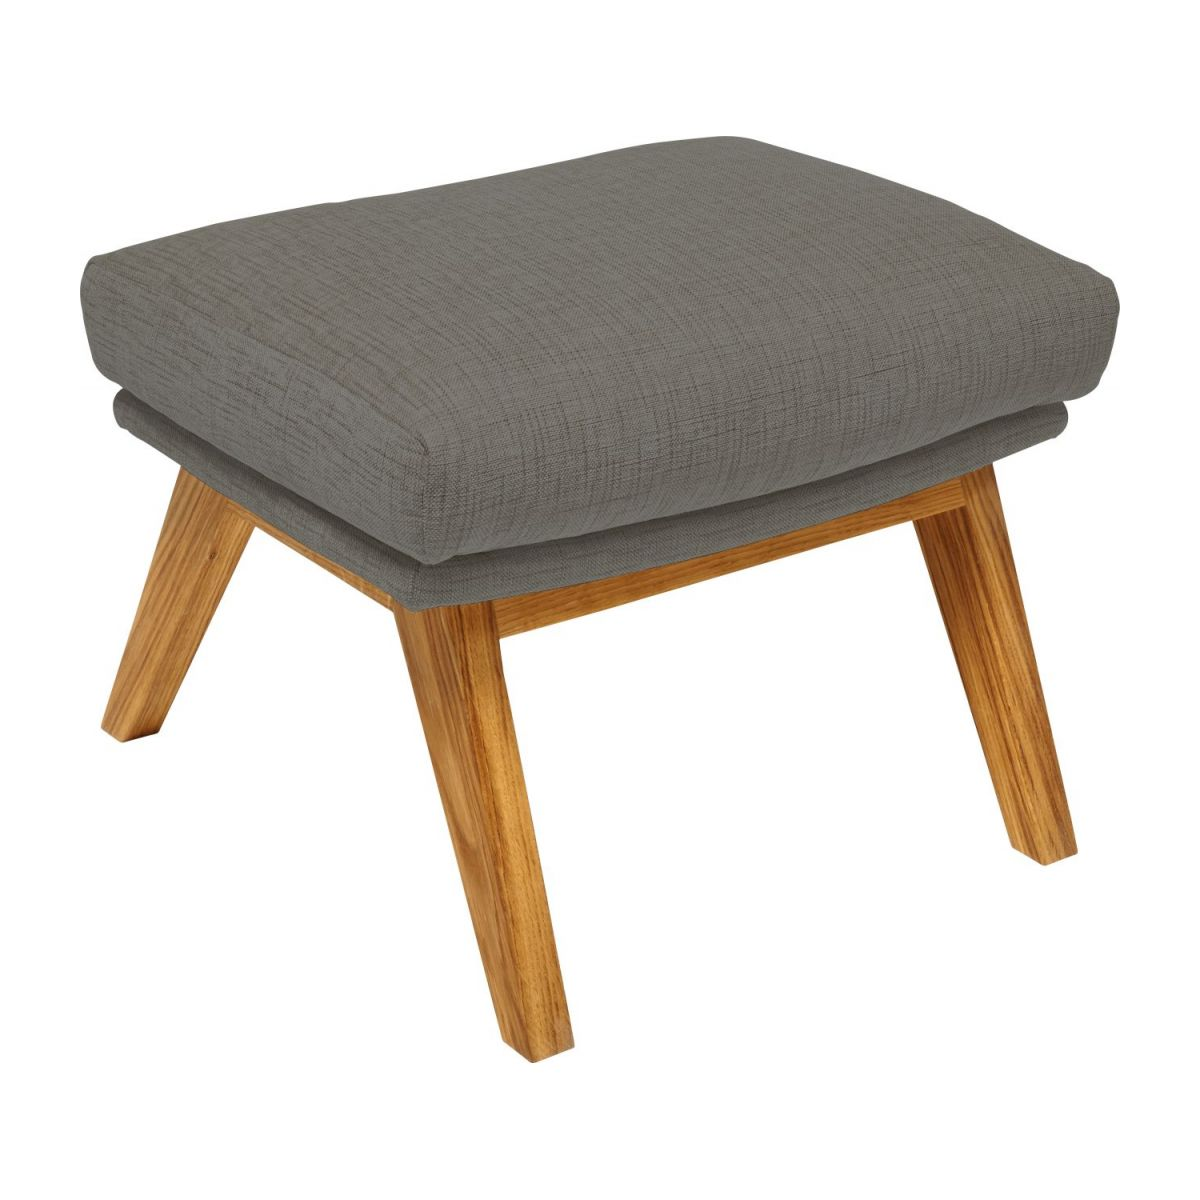 Footstool in Ancio fabric, river rock with oak legs n°1